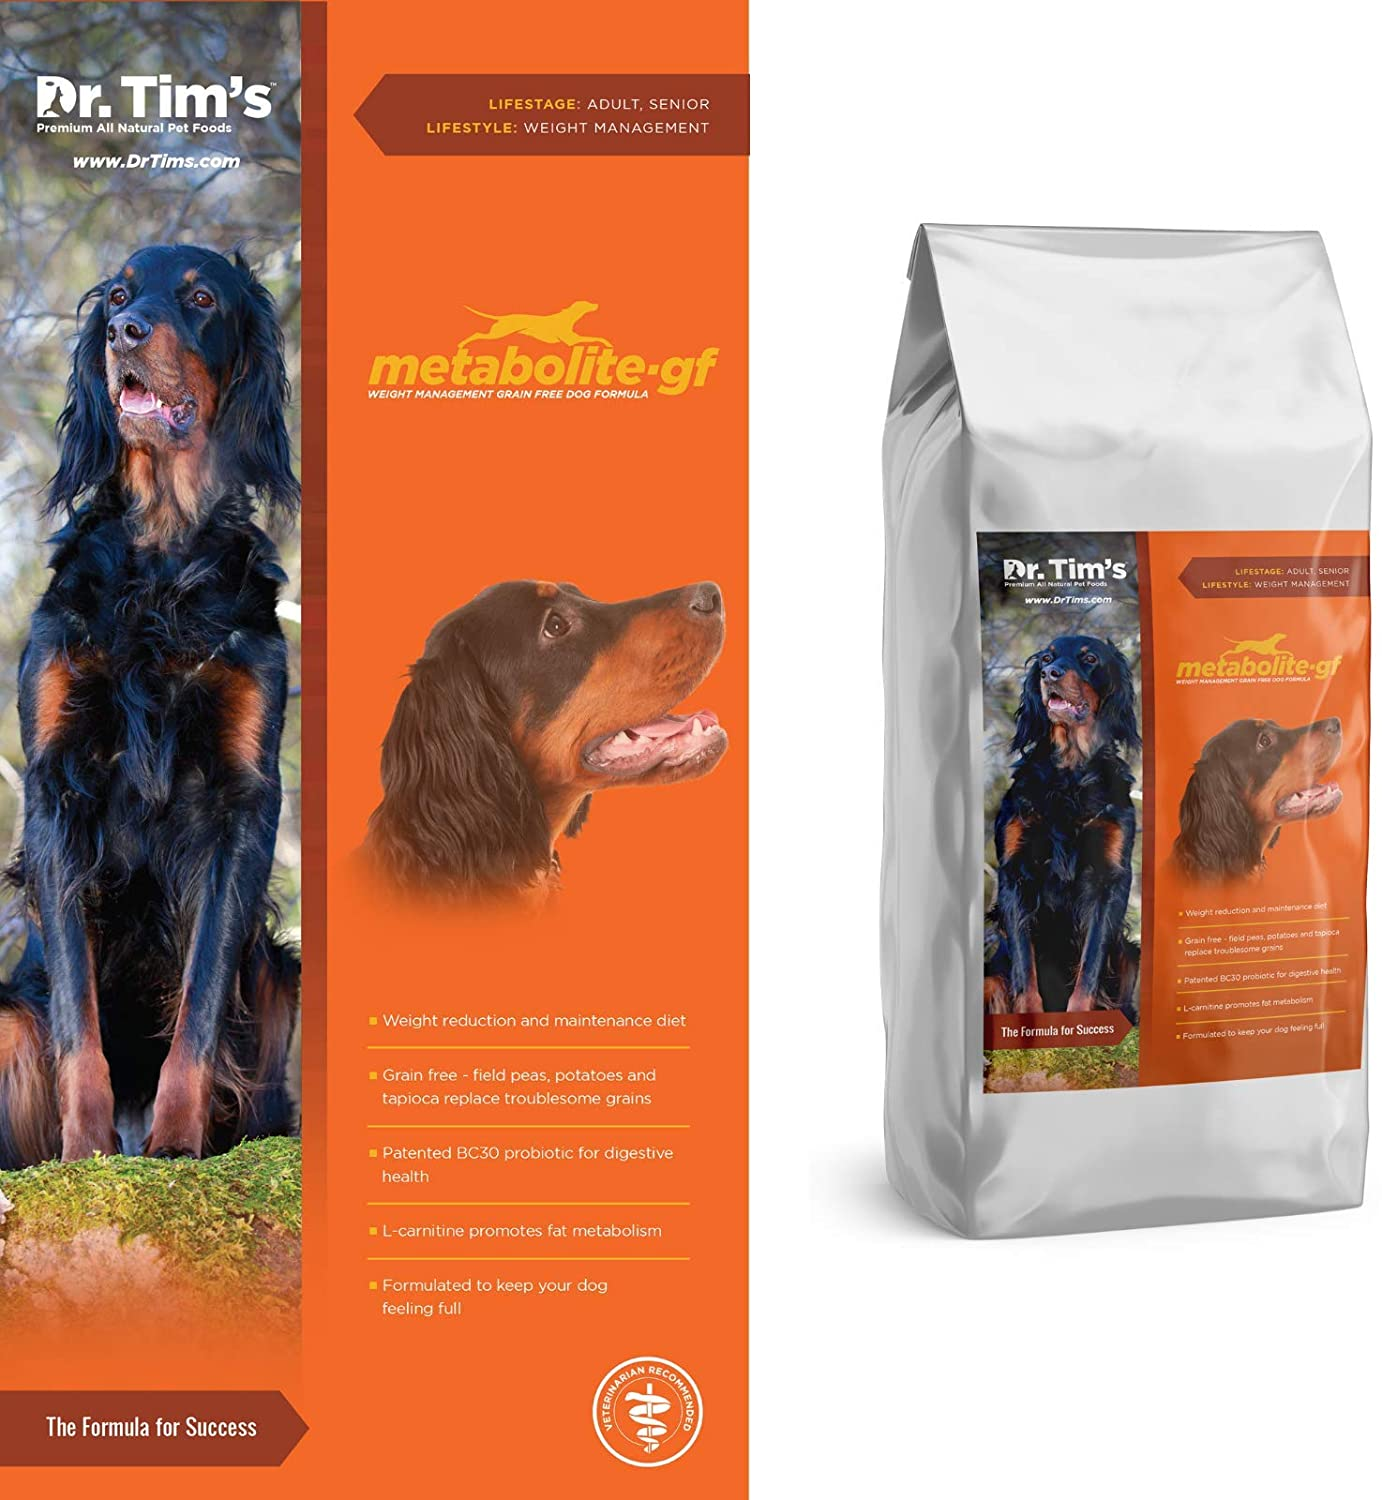 Dr. Tim's Grain Free Weight Management Metabolite Premium Dog Food